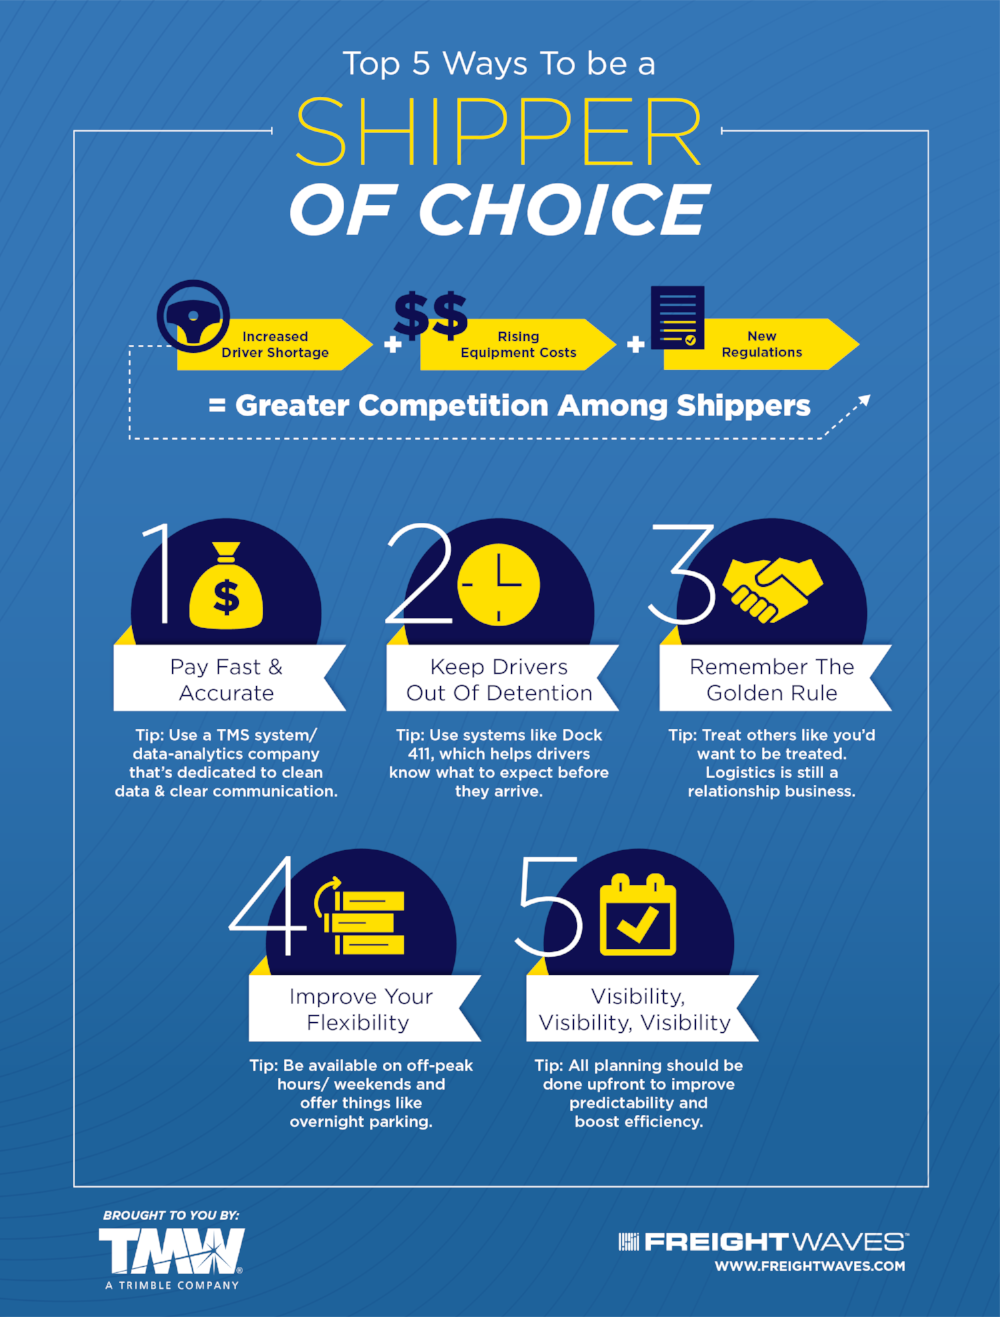 ShipperOfChoice_Infographic-01.png